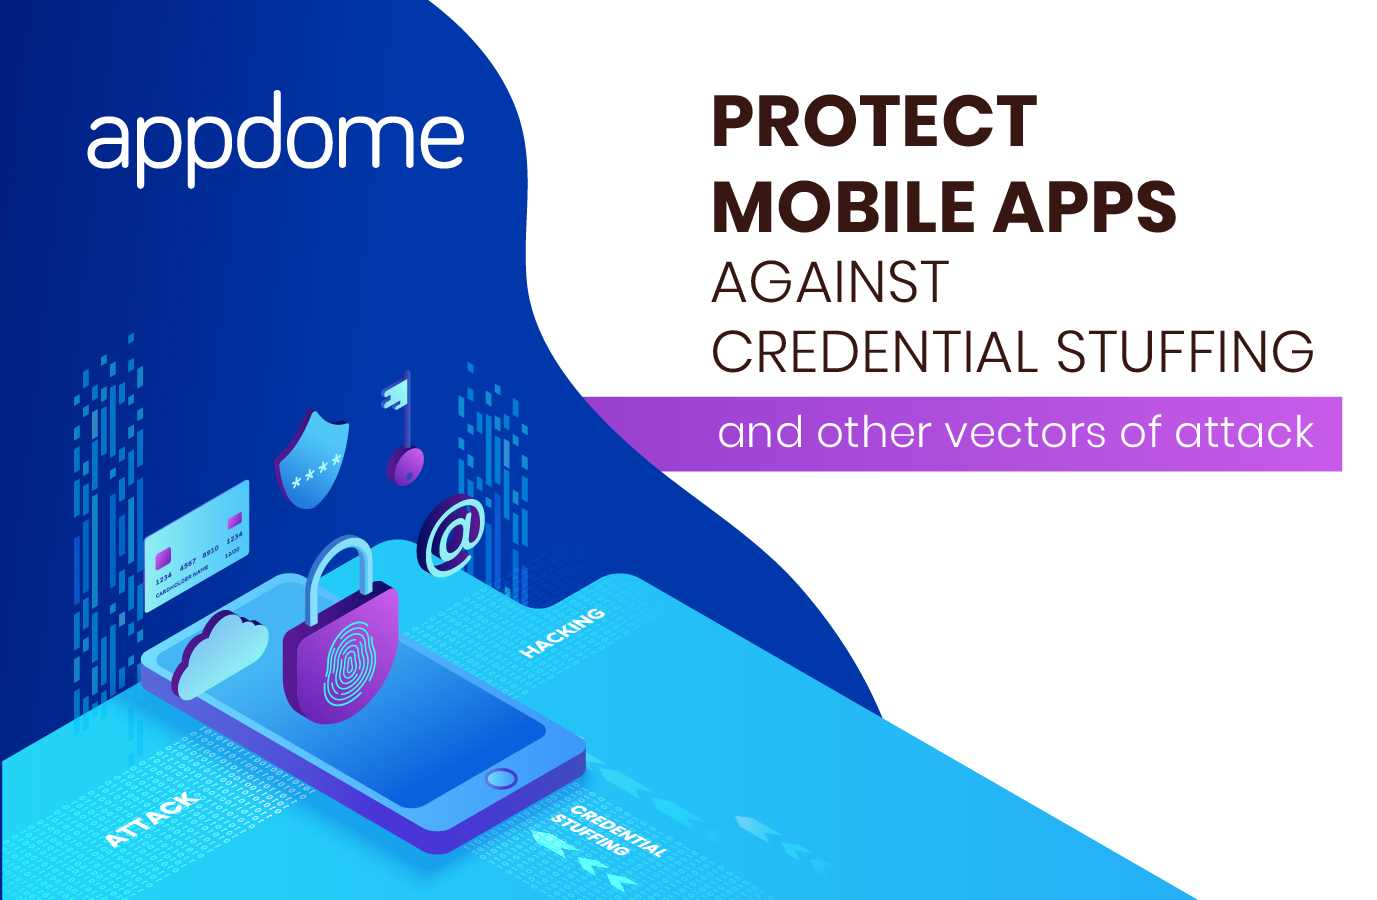 Protect Mobile Apps Against Credential Stuffing Attacks